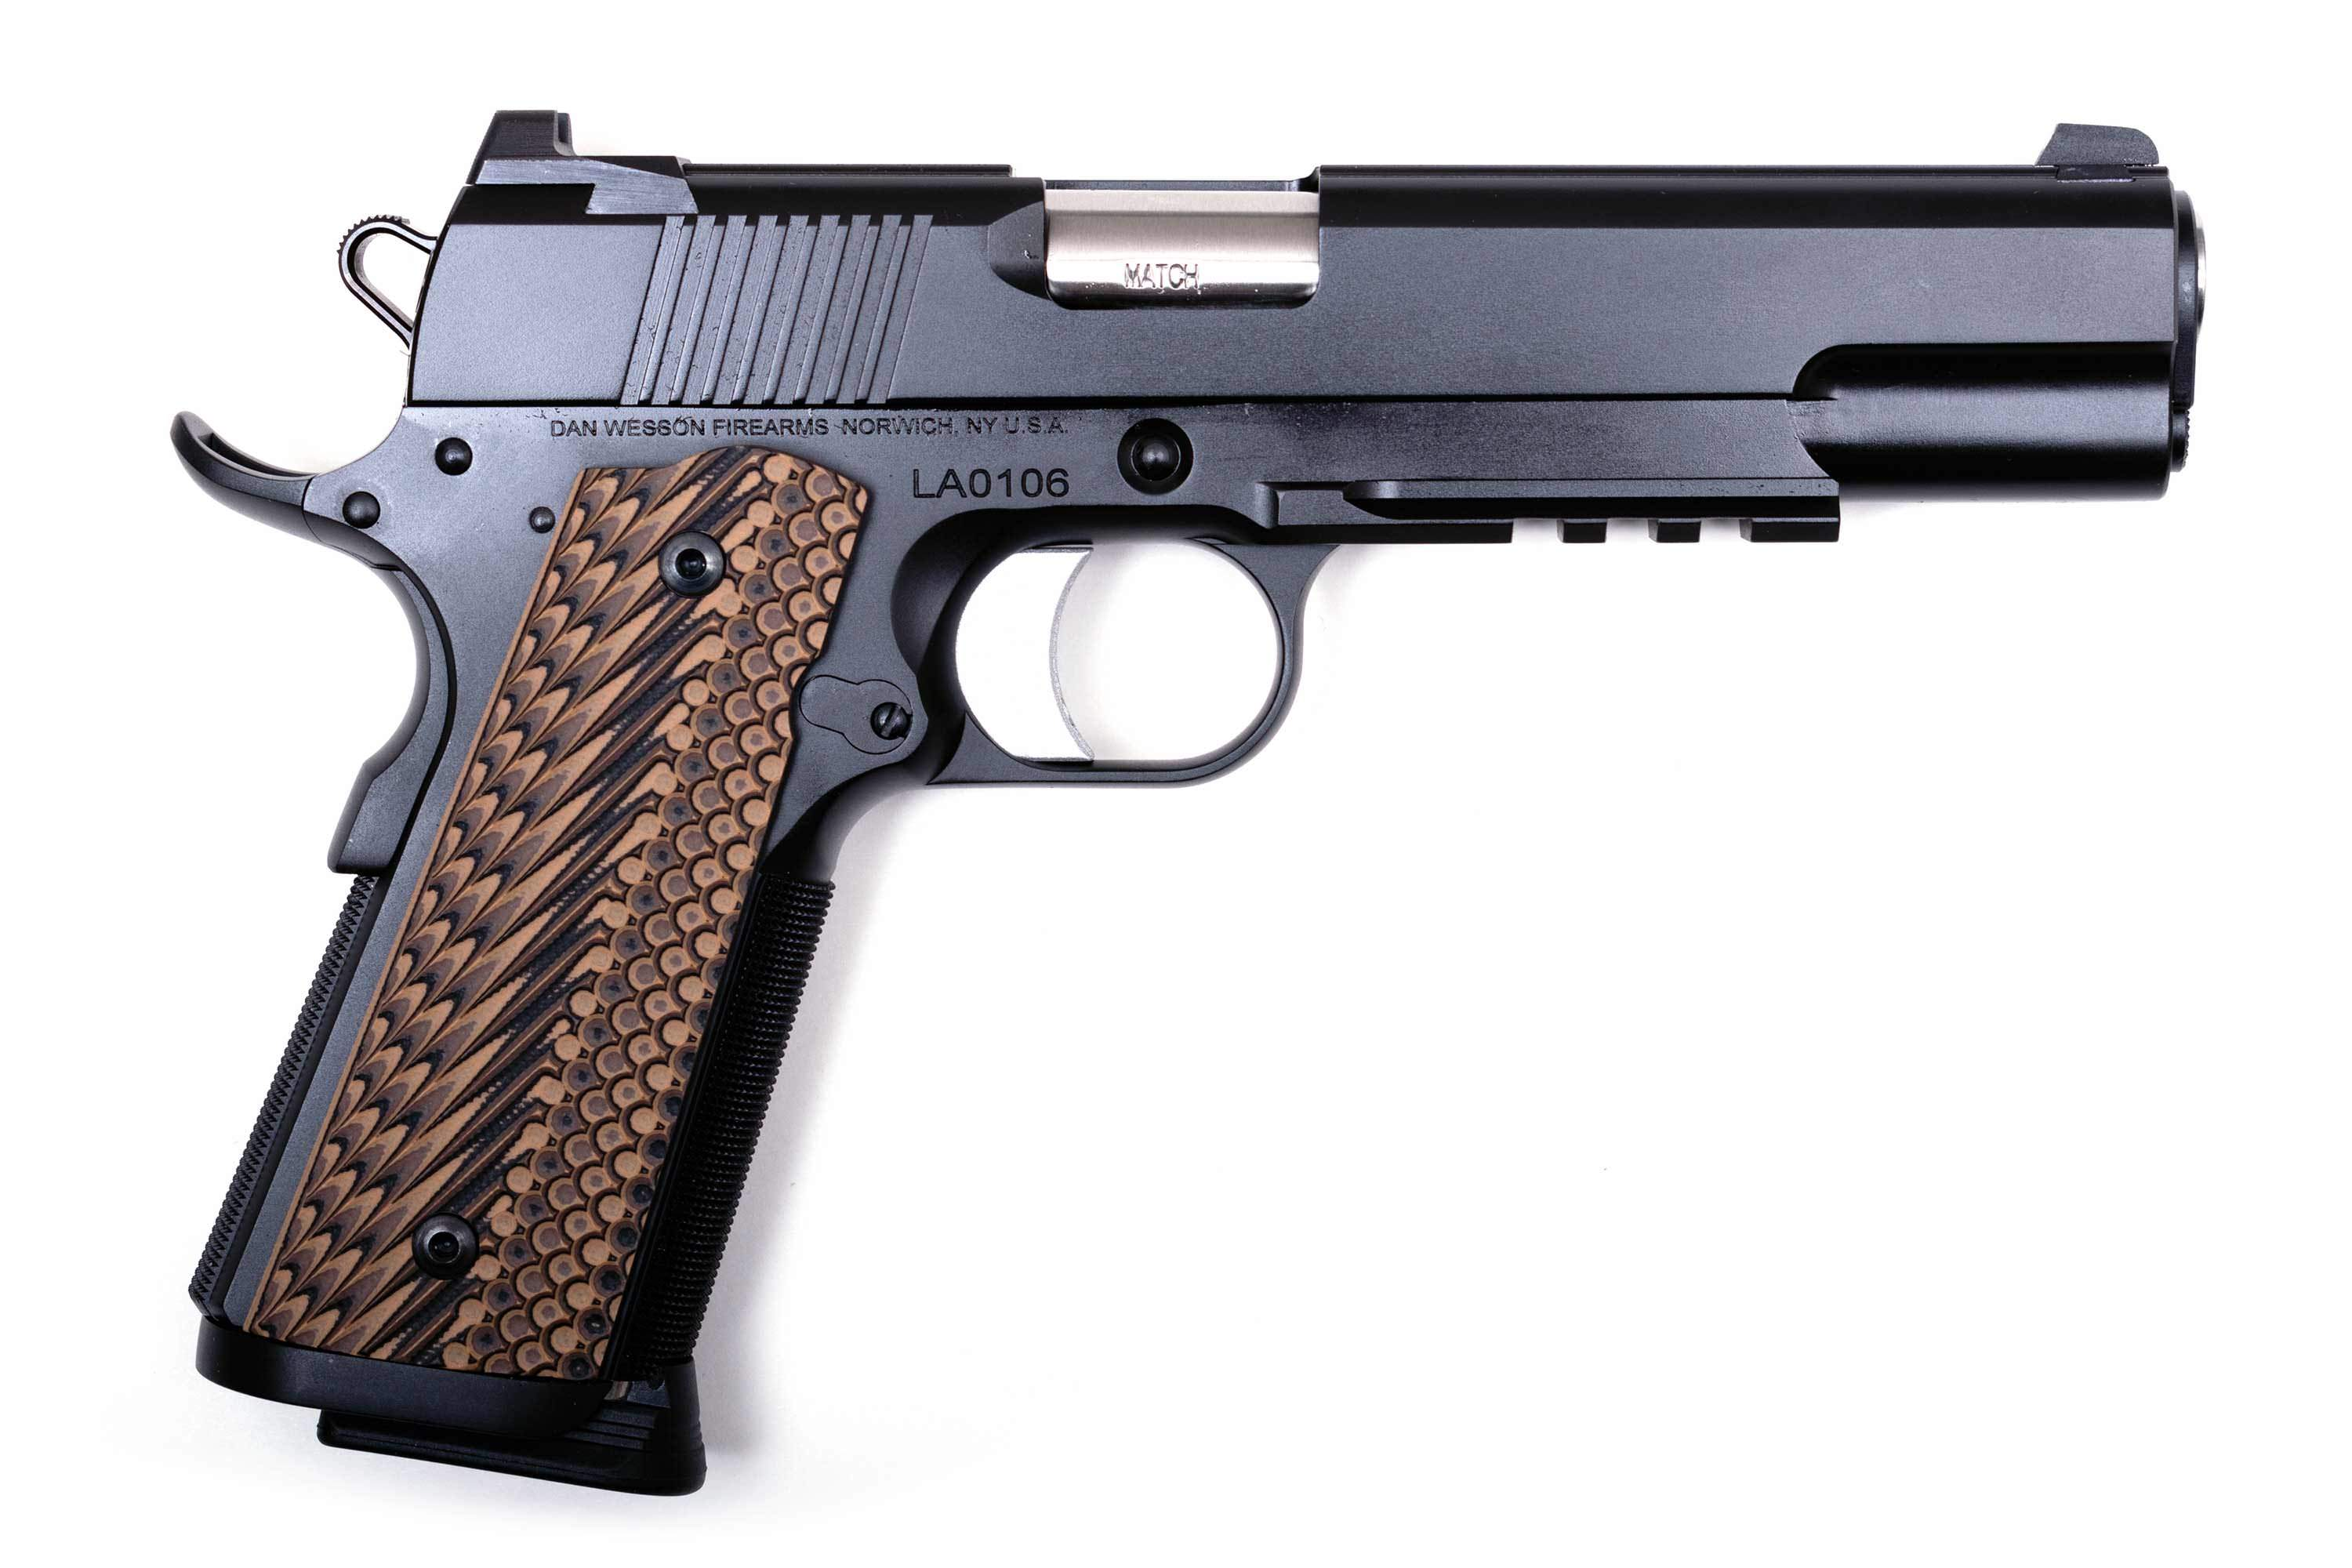 DAN WESSON SPECIALIST c.45 ACP AND 9MM 5